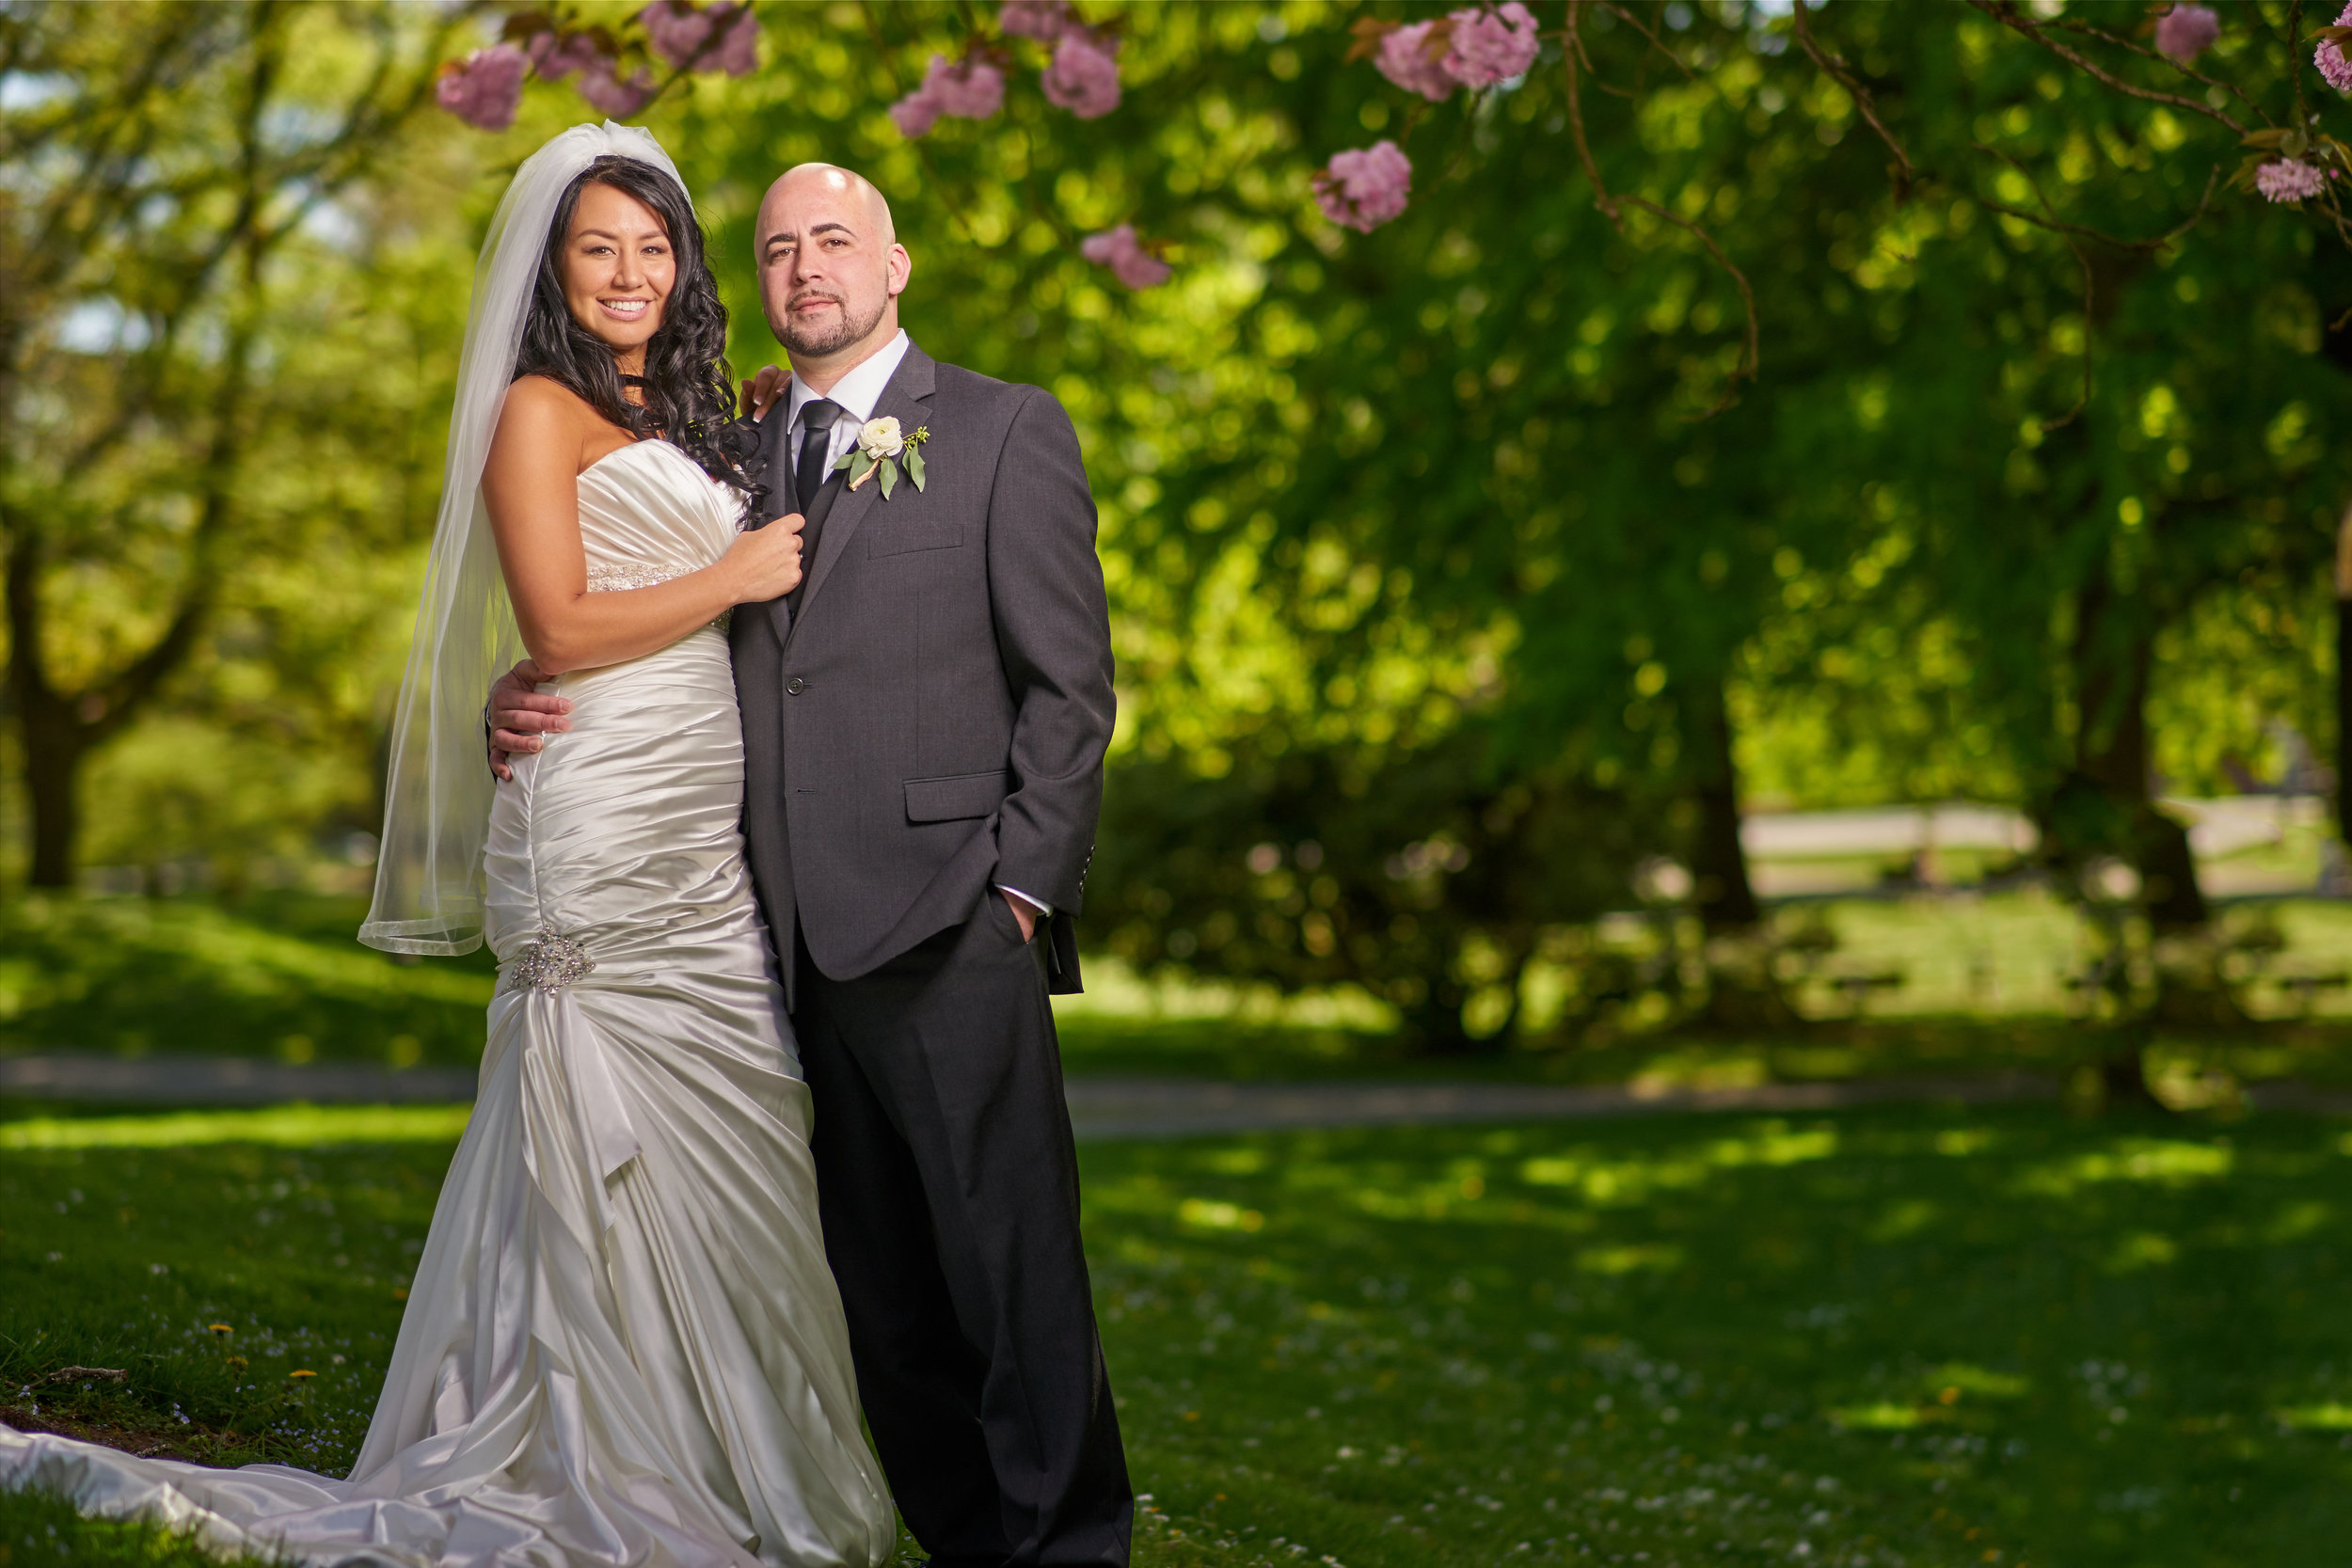 Kim Anthony-Bride and Groom Portraits-0019.jpg